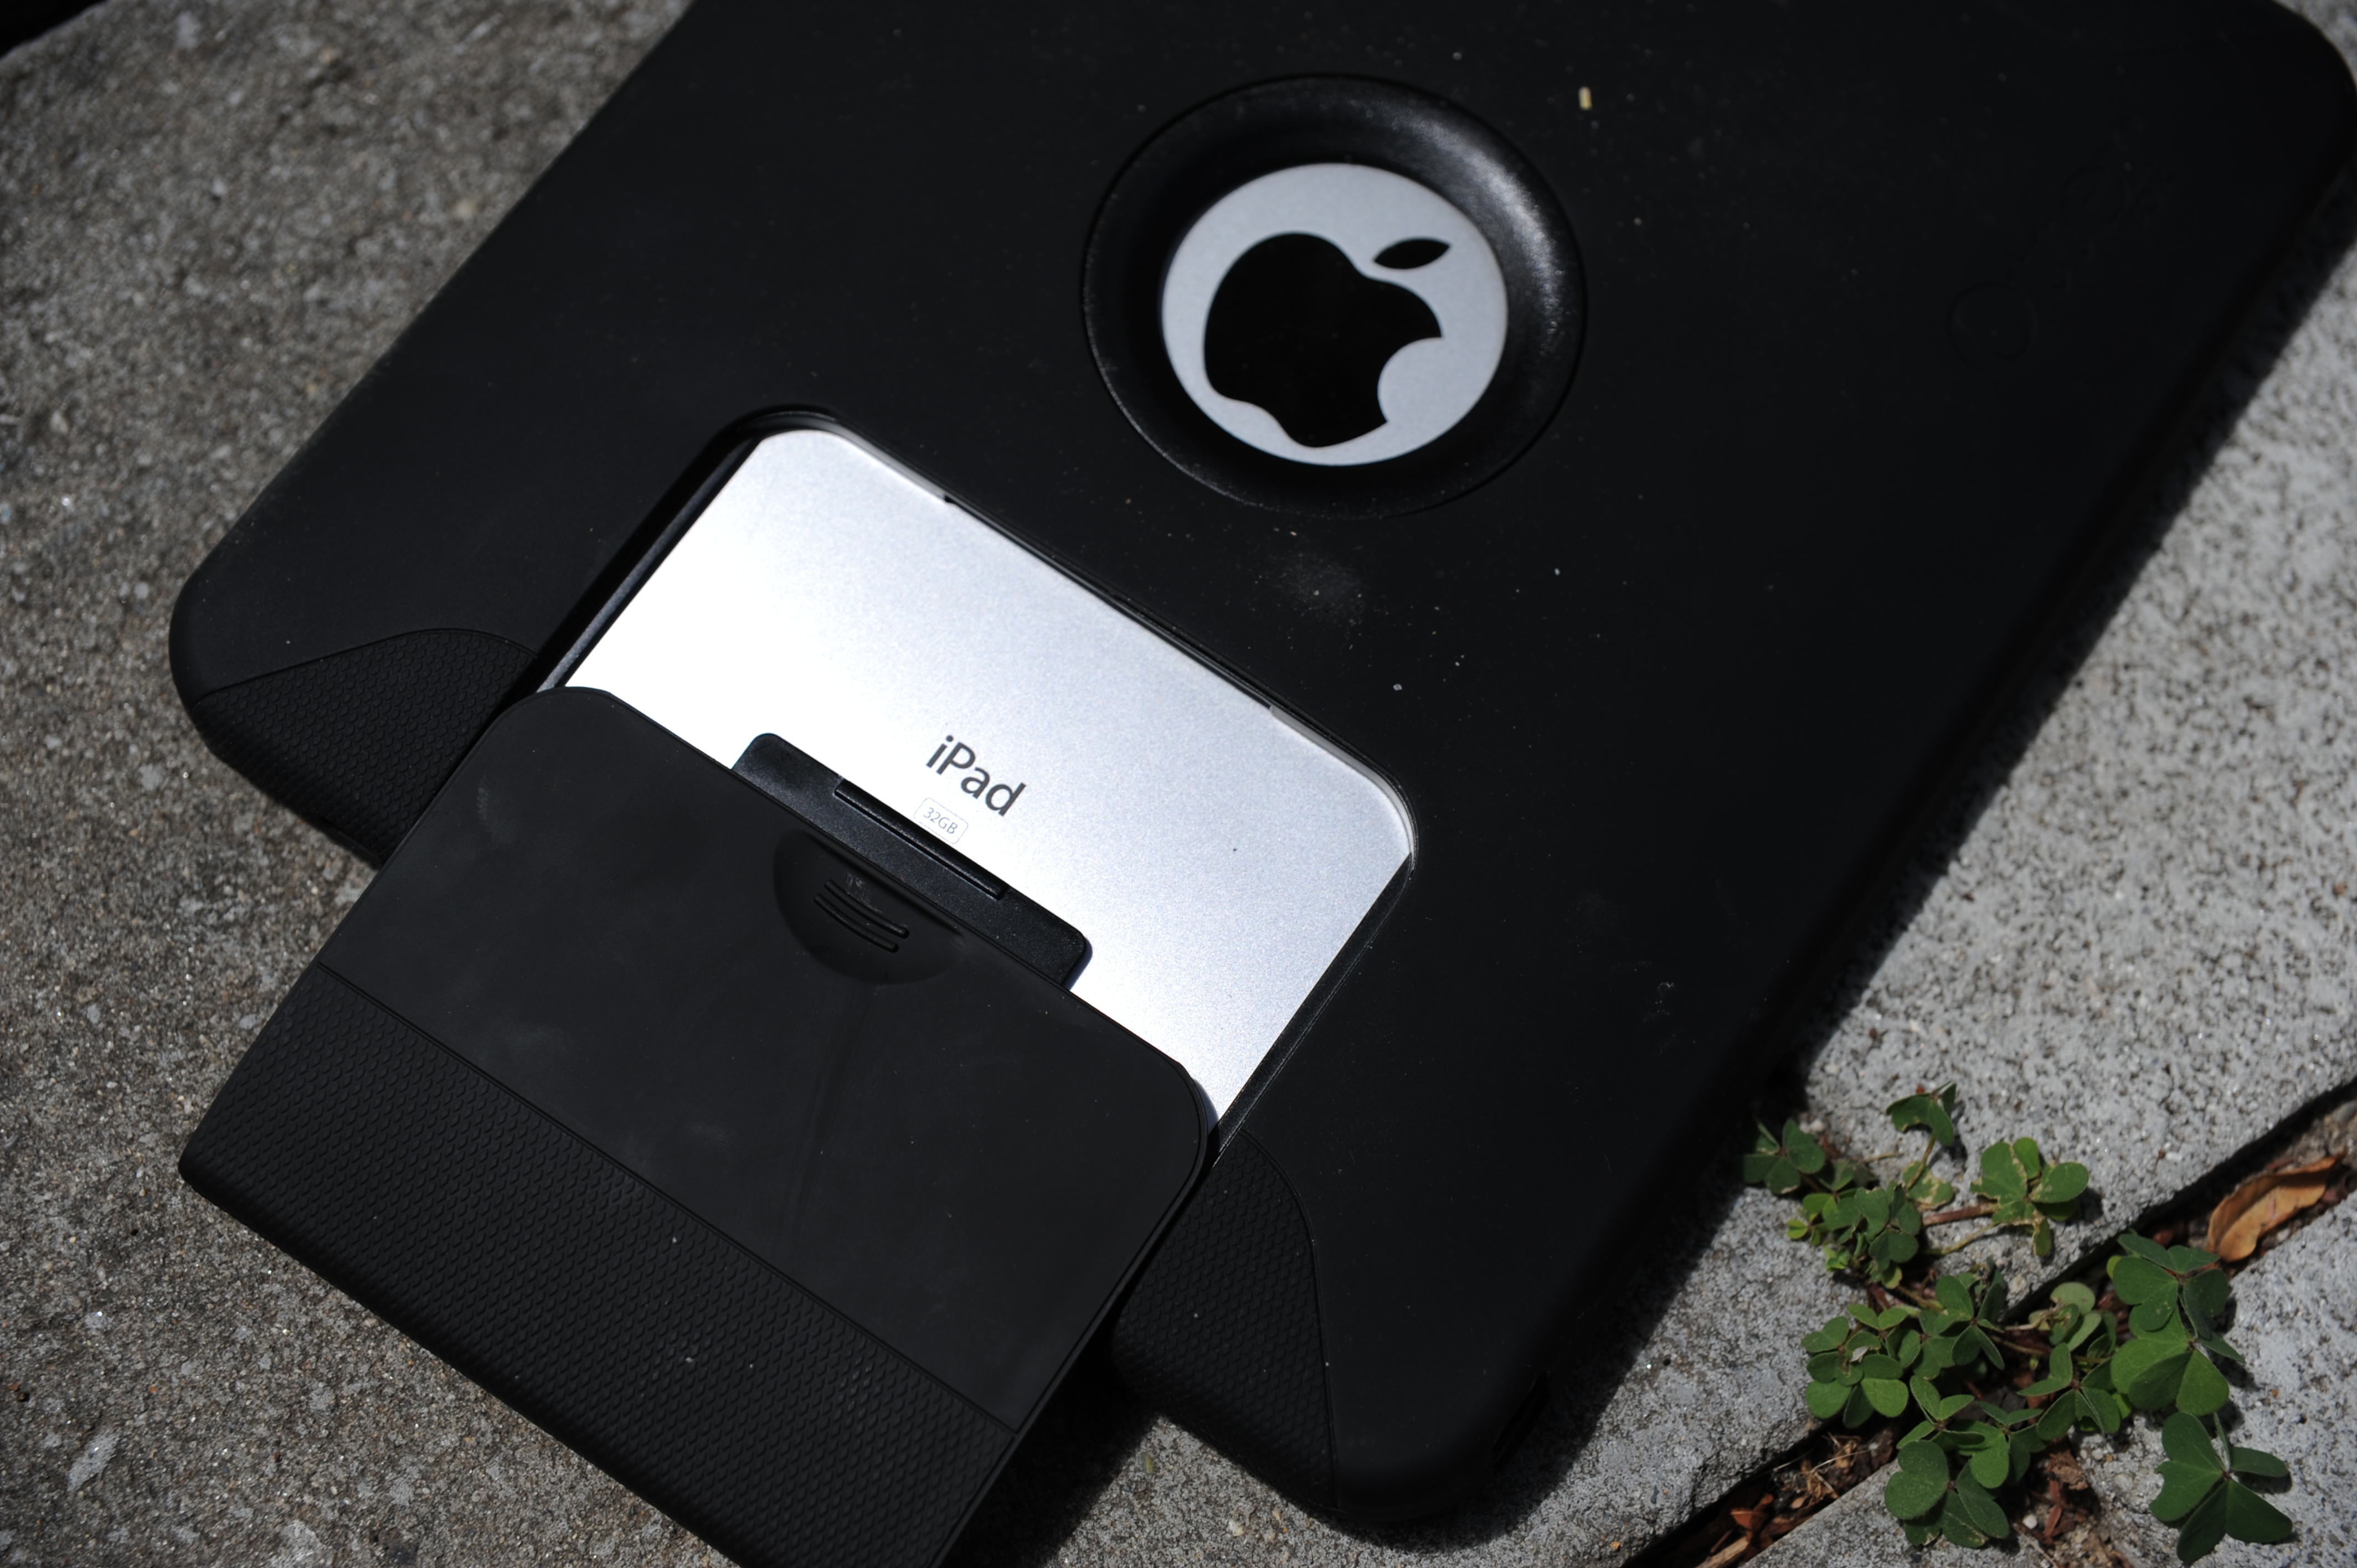 otter ipad case how to open